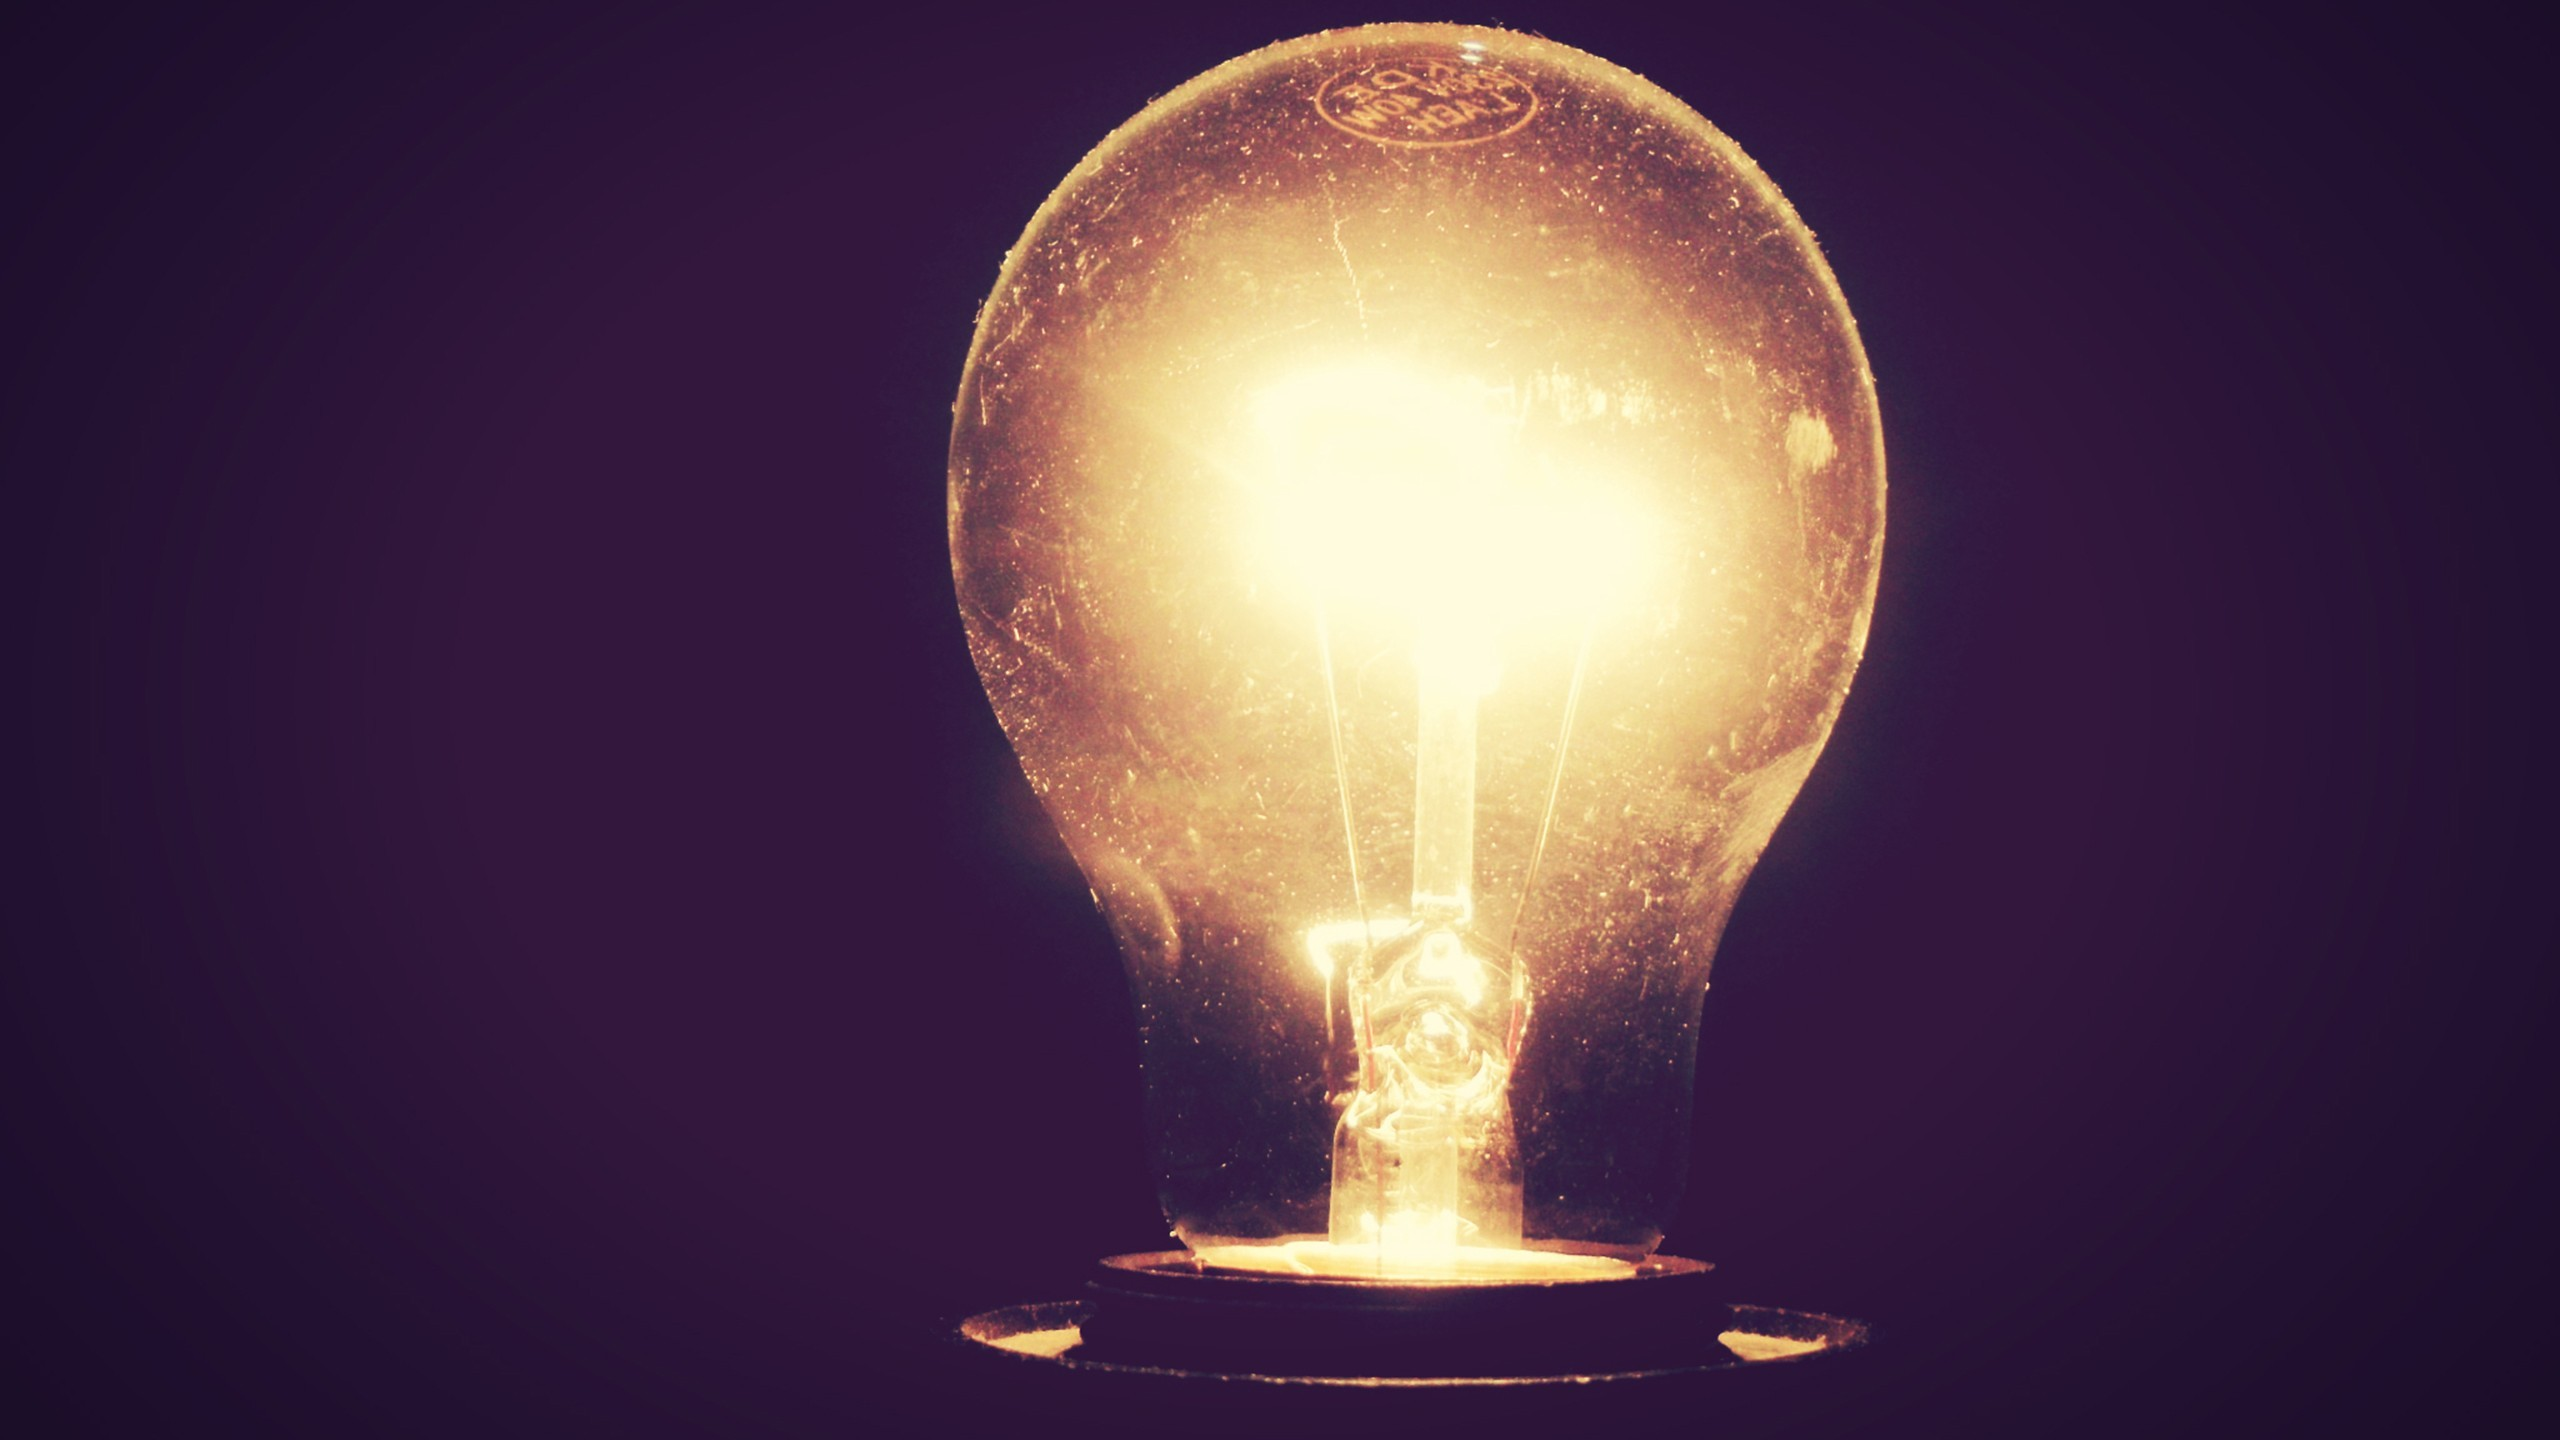 light bulb wallpapers 64 images